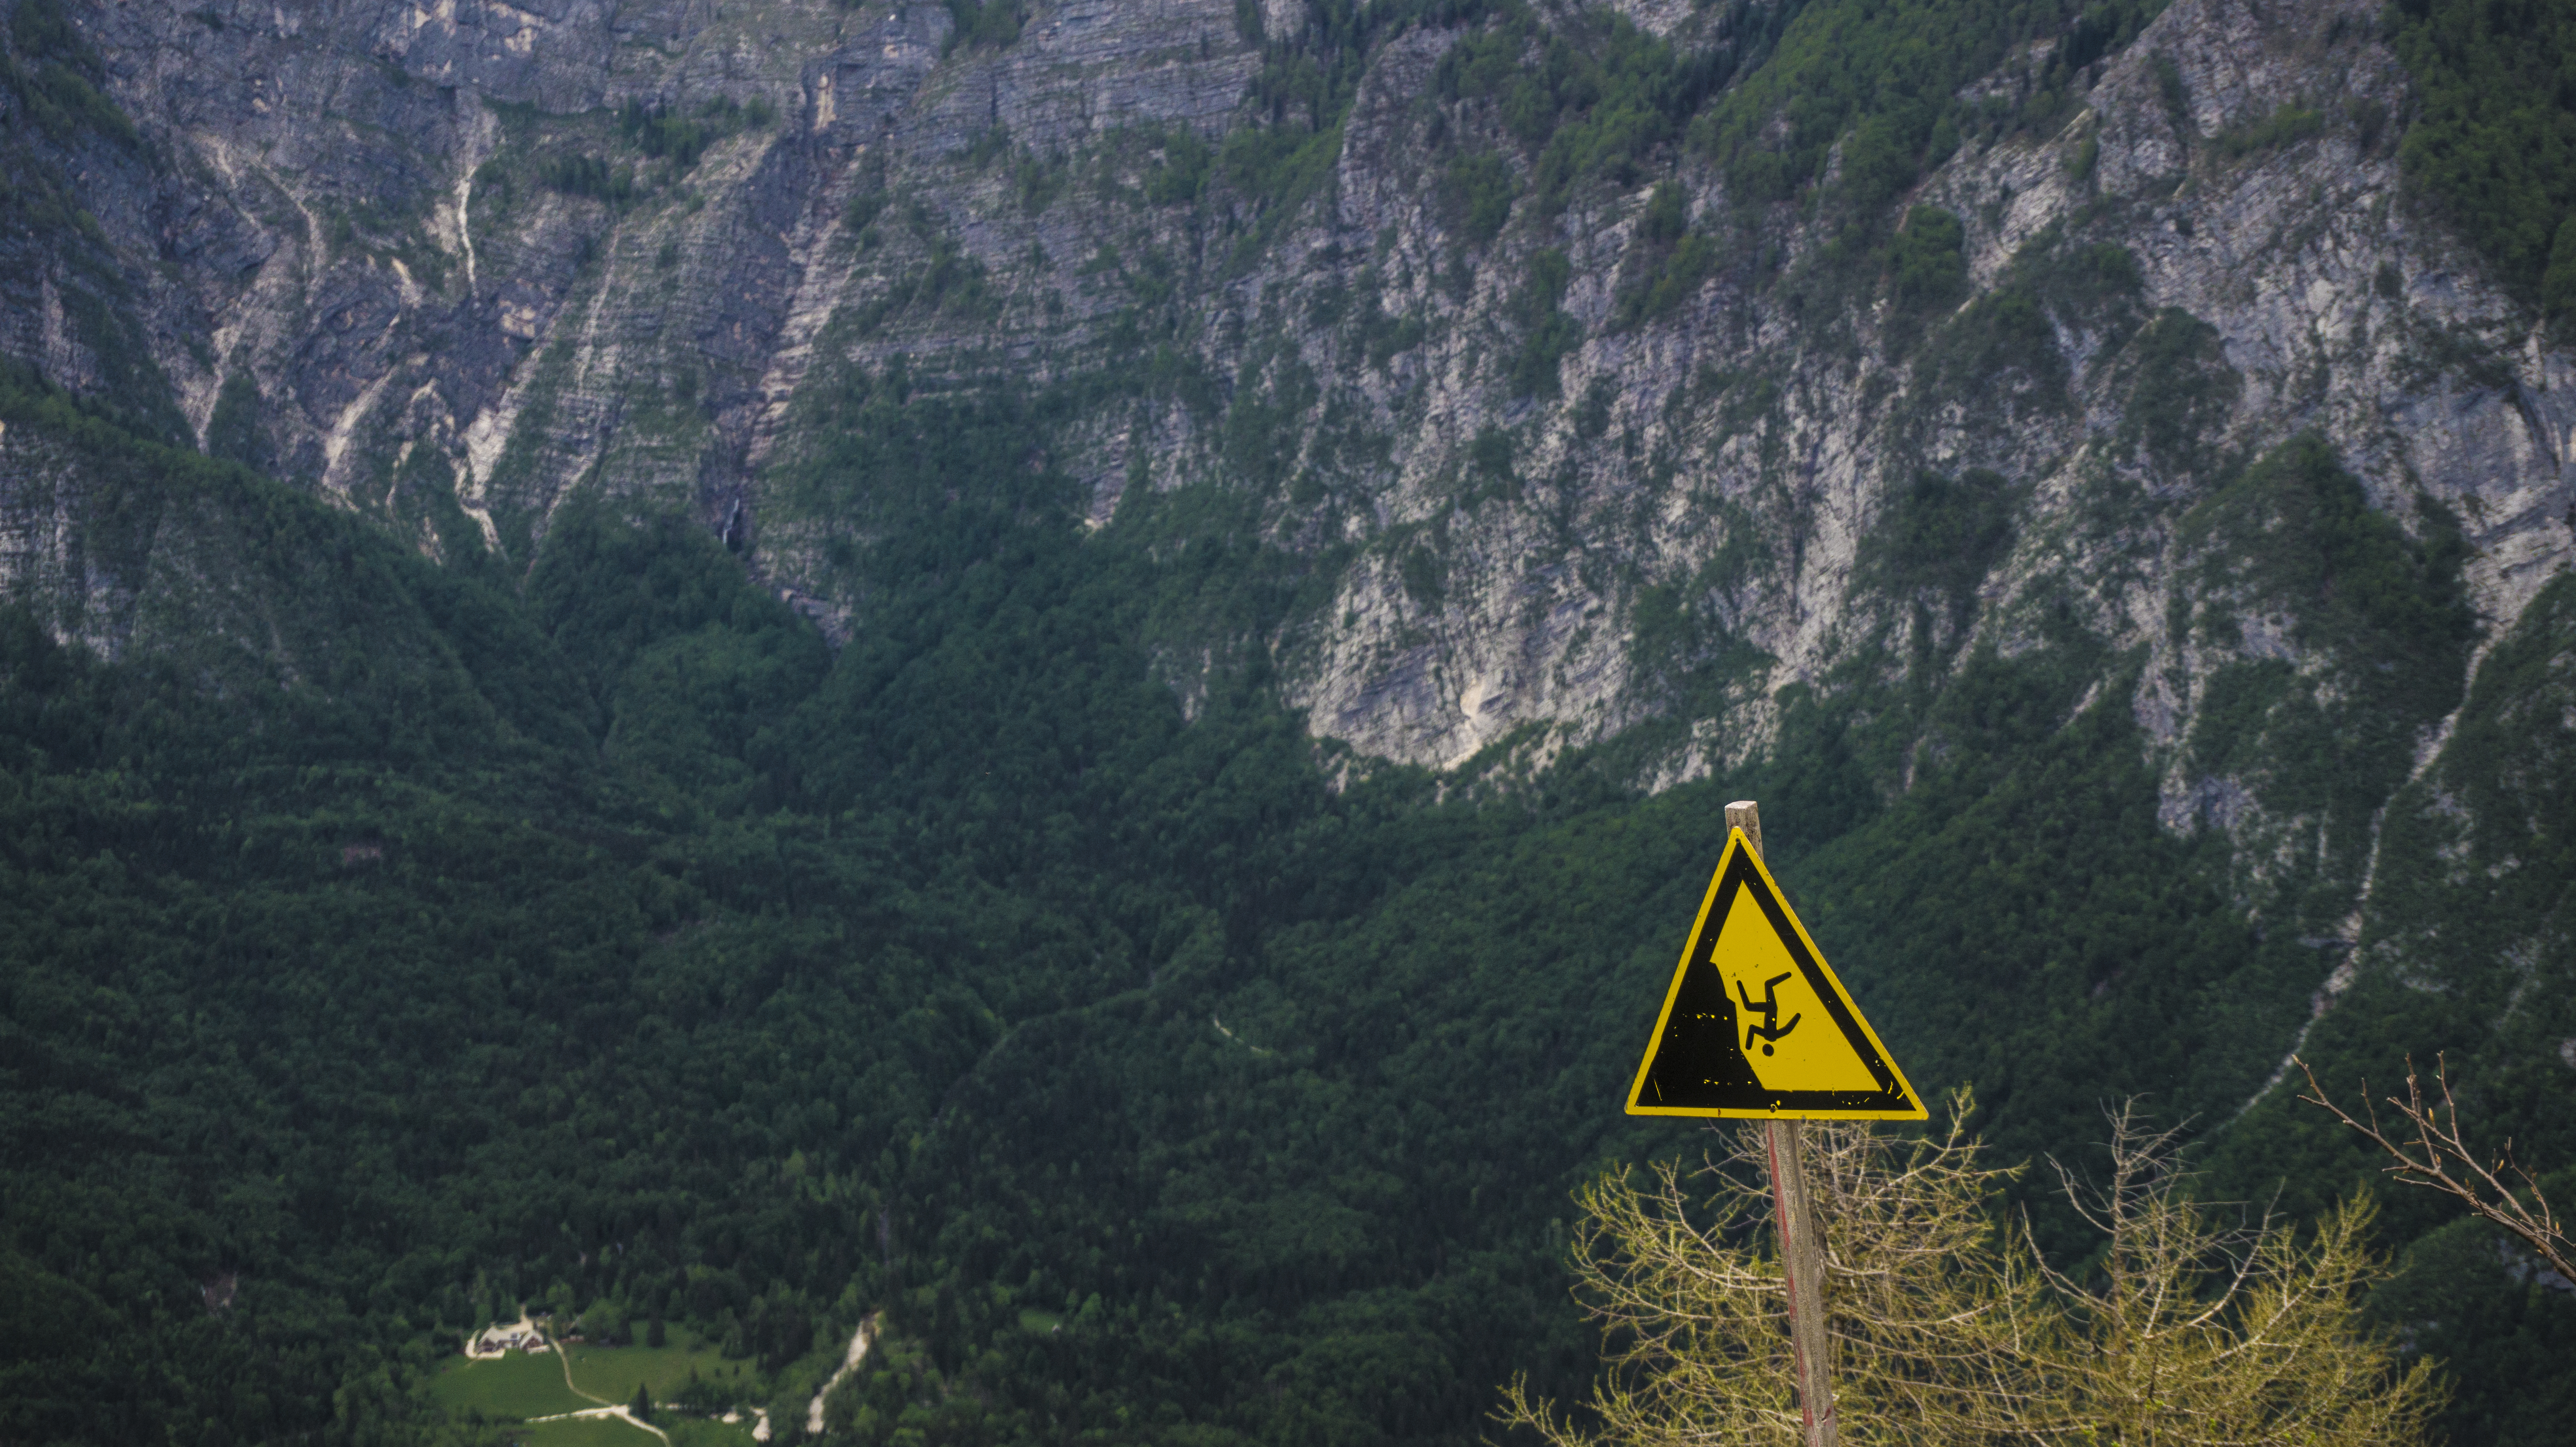 File:Don't fall off the Cliff! (16841837743) jpg - Wikimedia Commons